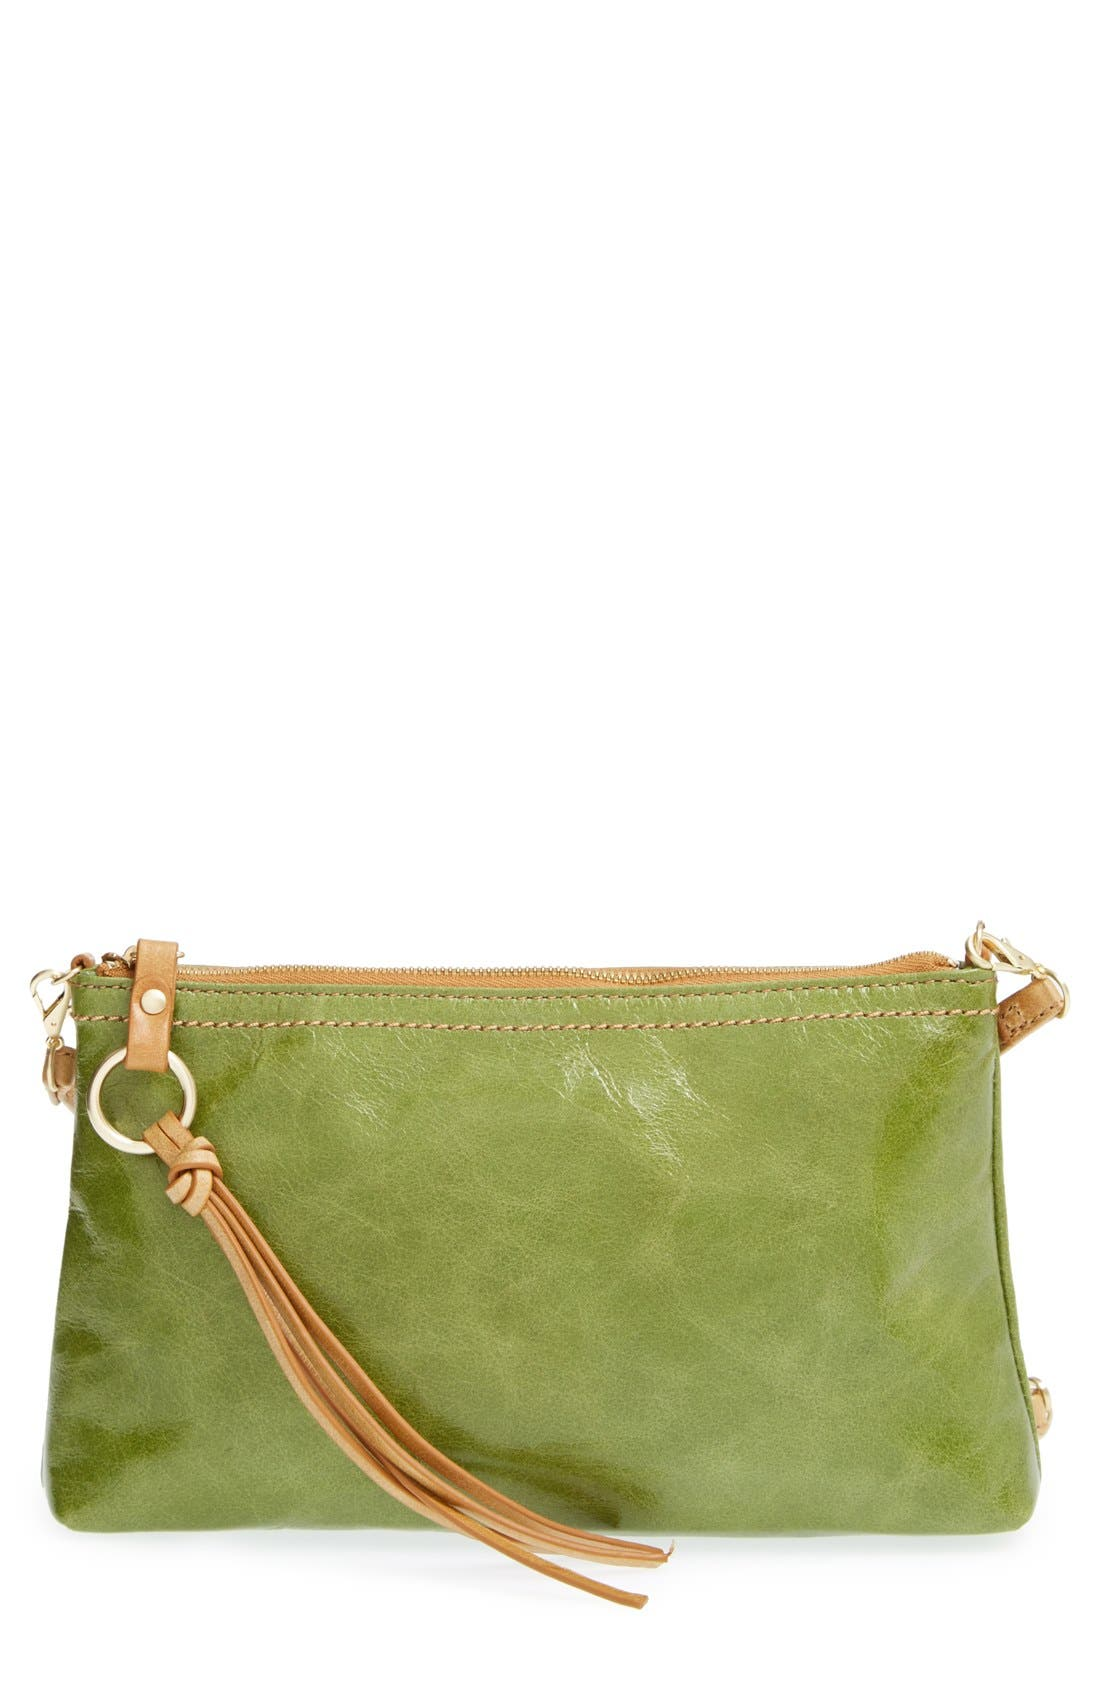 'Darcy' Leather Crossbody Bag,                             Main thumbnail 16, color,